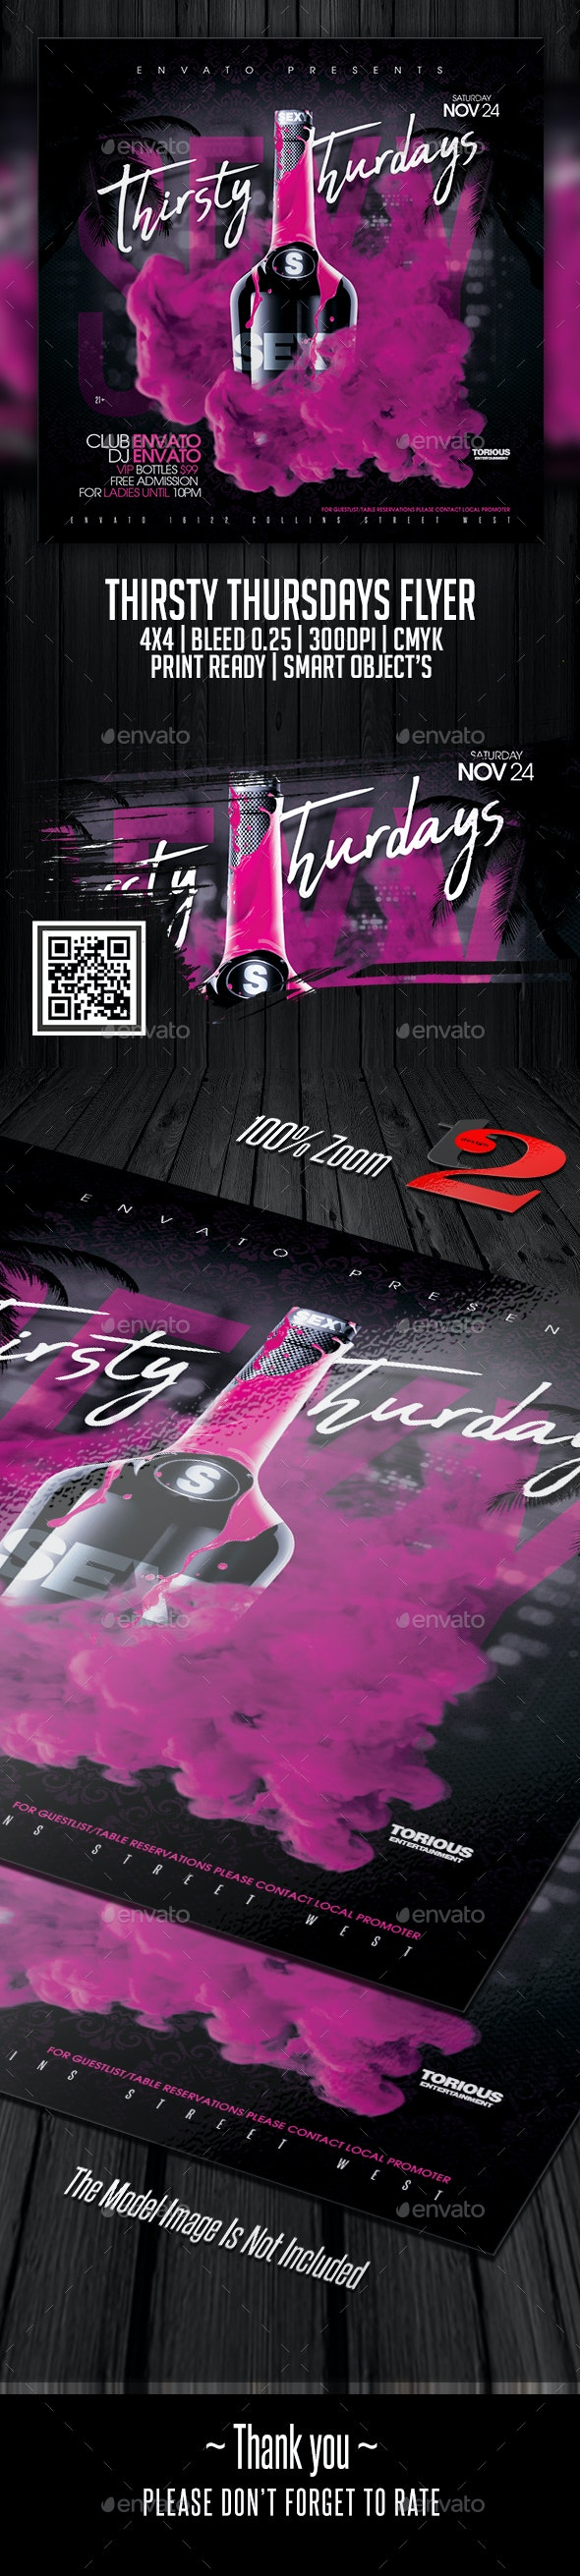 Thirsty Thursdays Flyer Template - Clubs & Parties Events